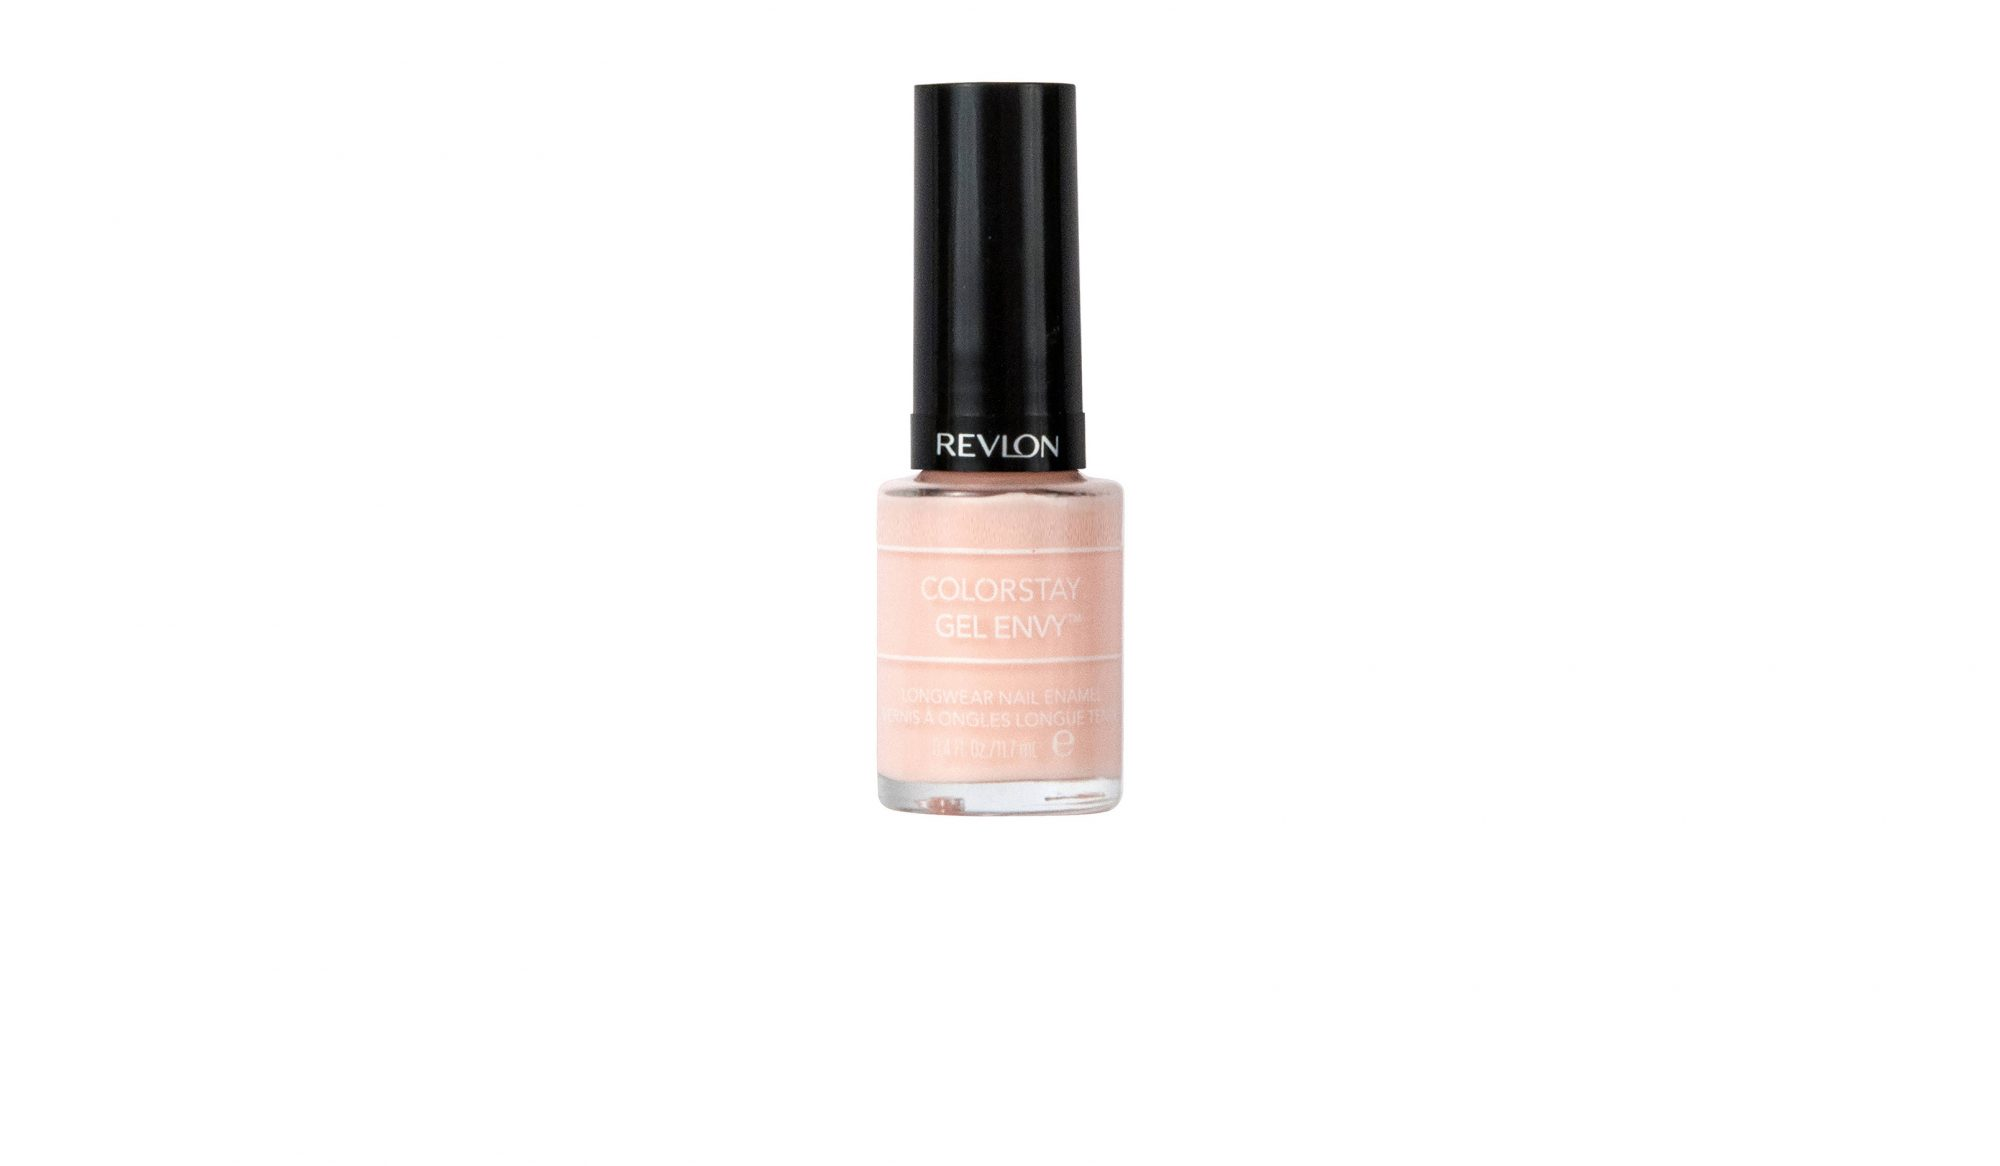 Revlon ColorStay Gel Envy Up in Charms